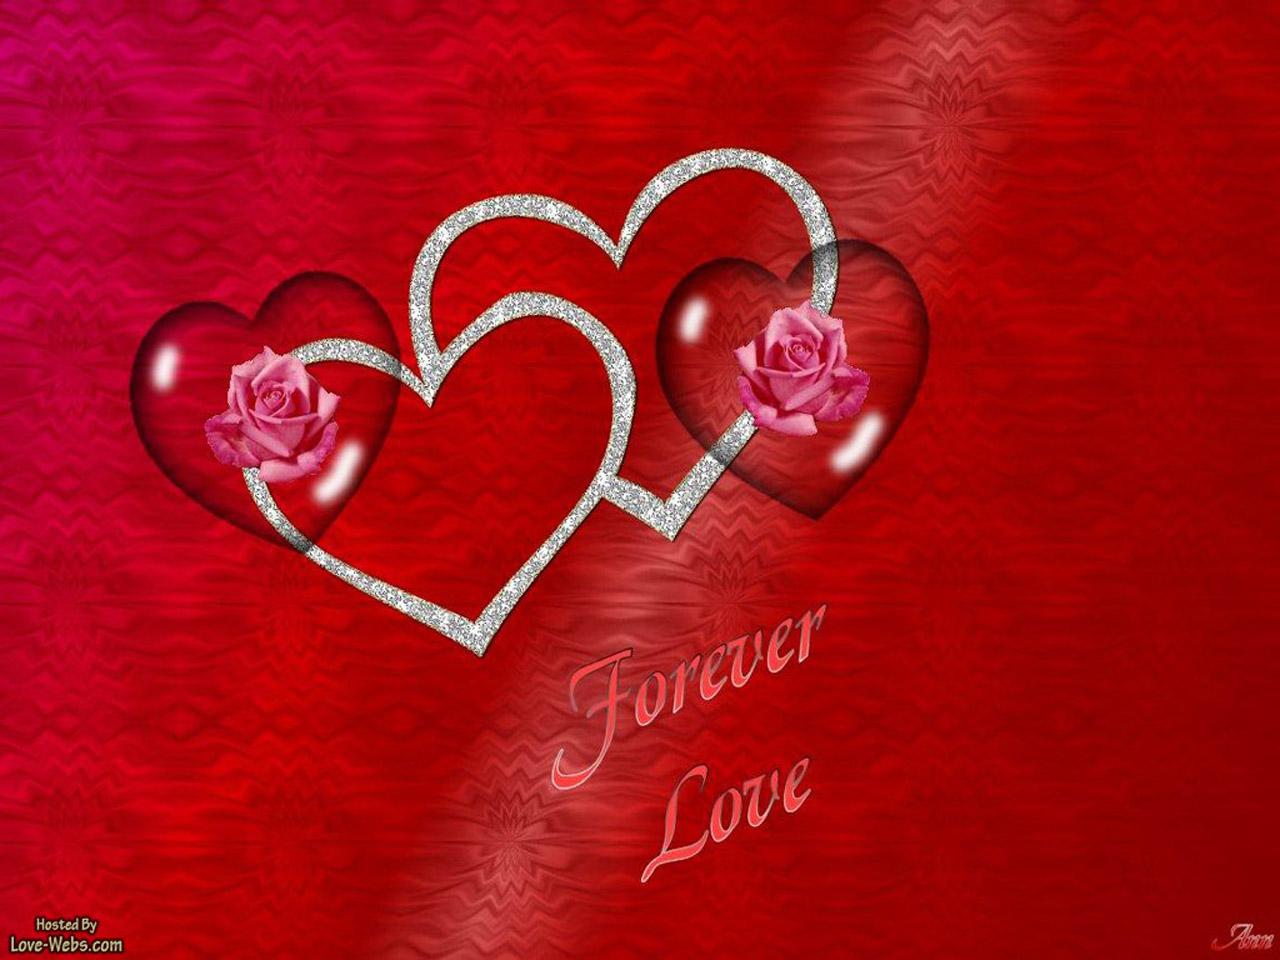 all love wallpaper,heart,red,love,valentine's day,text